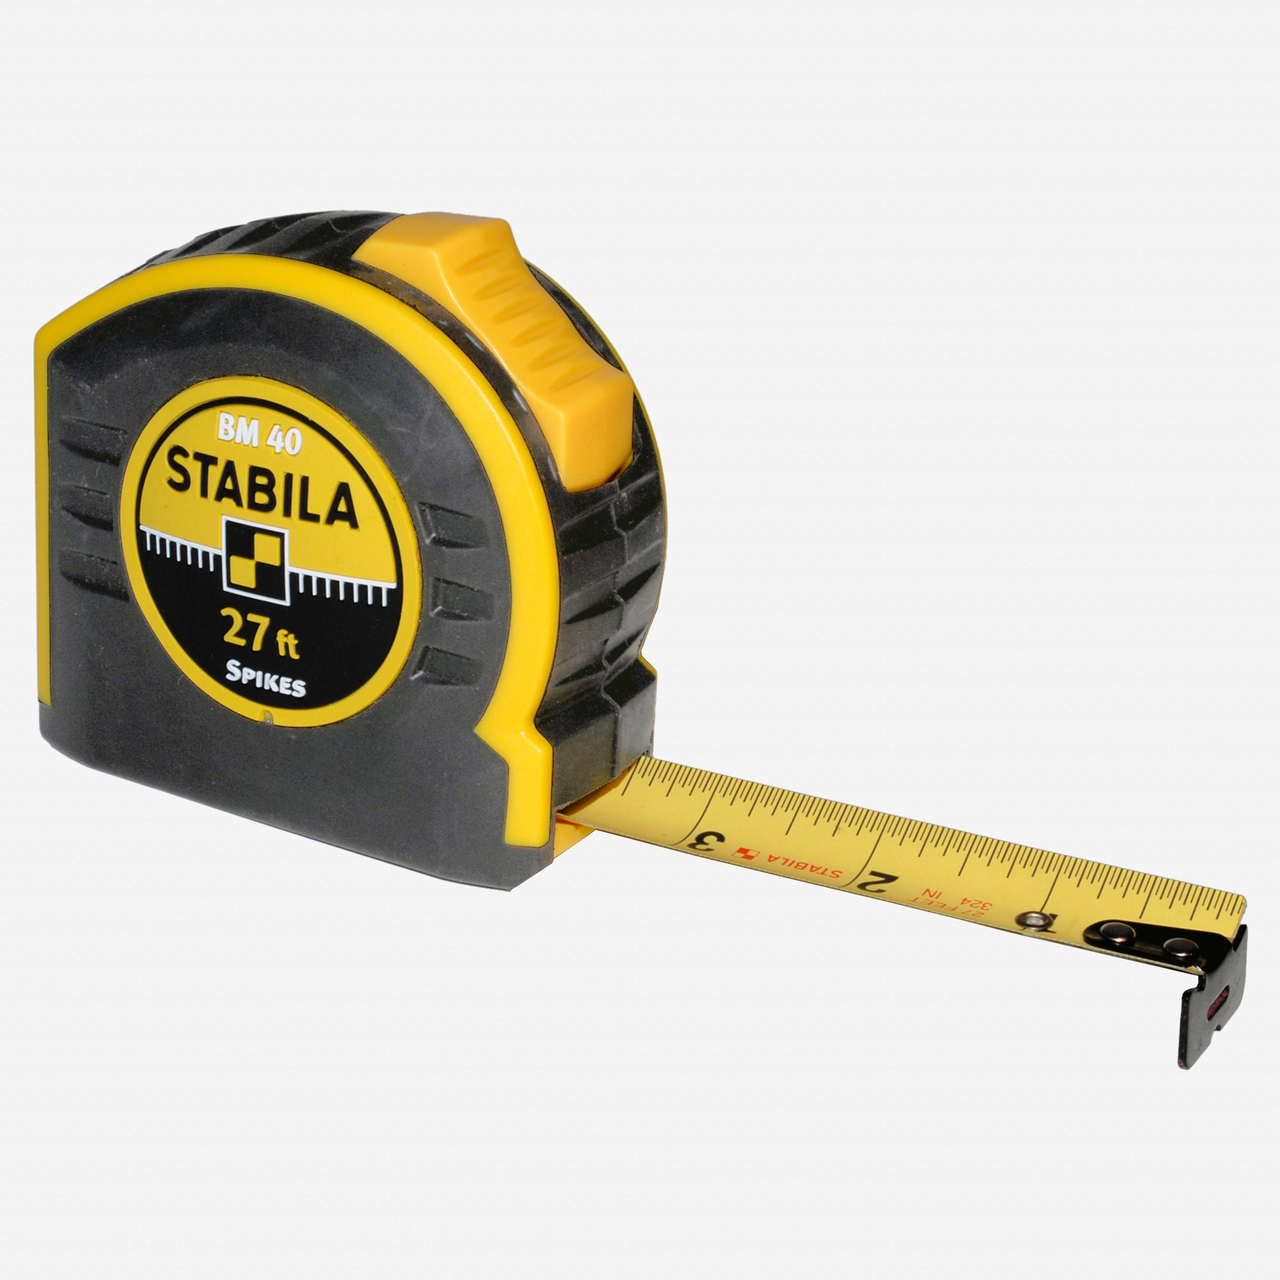 Stabila 30327 Type BM40 Tape Measure, 27' - KC Tool